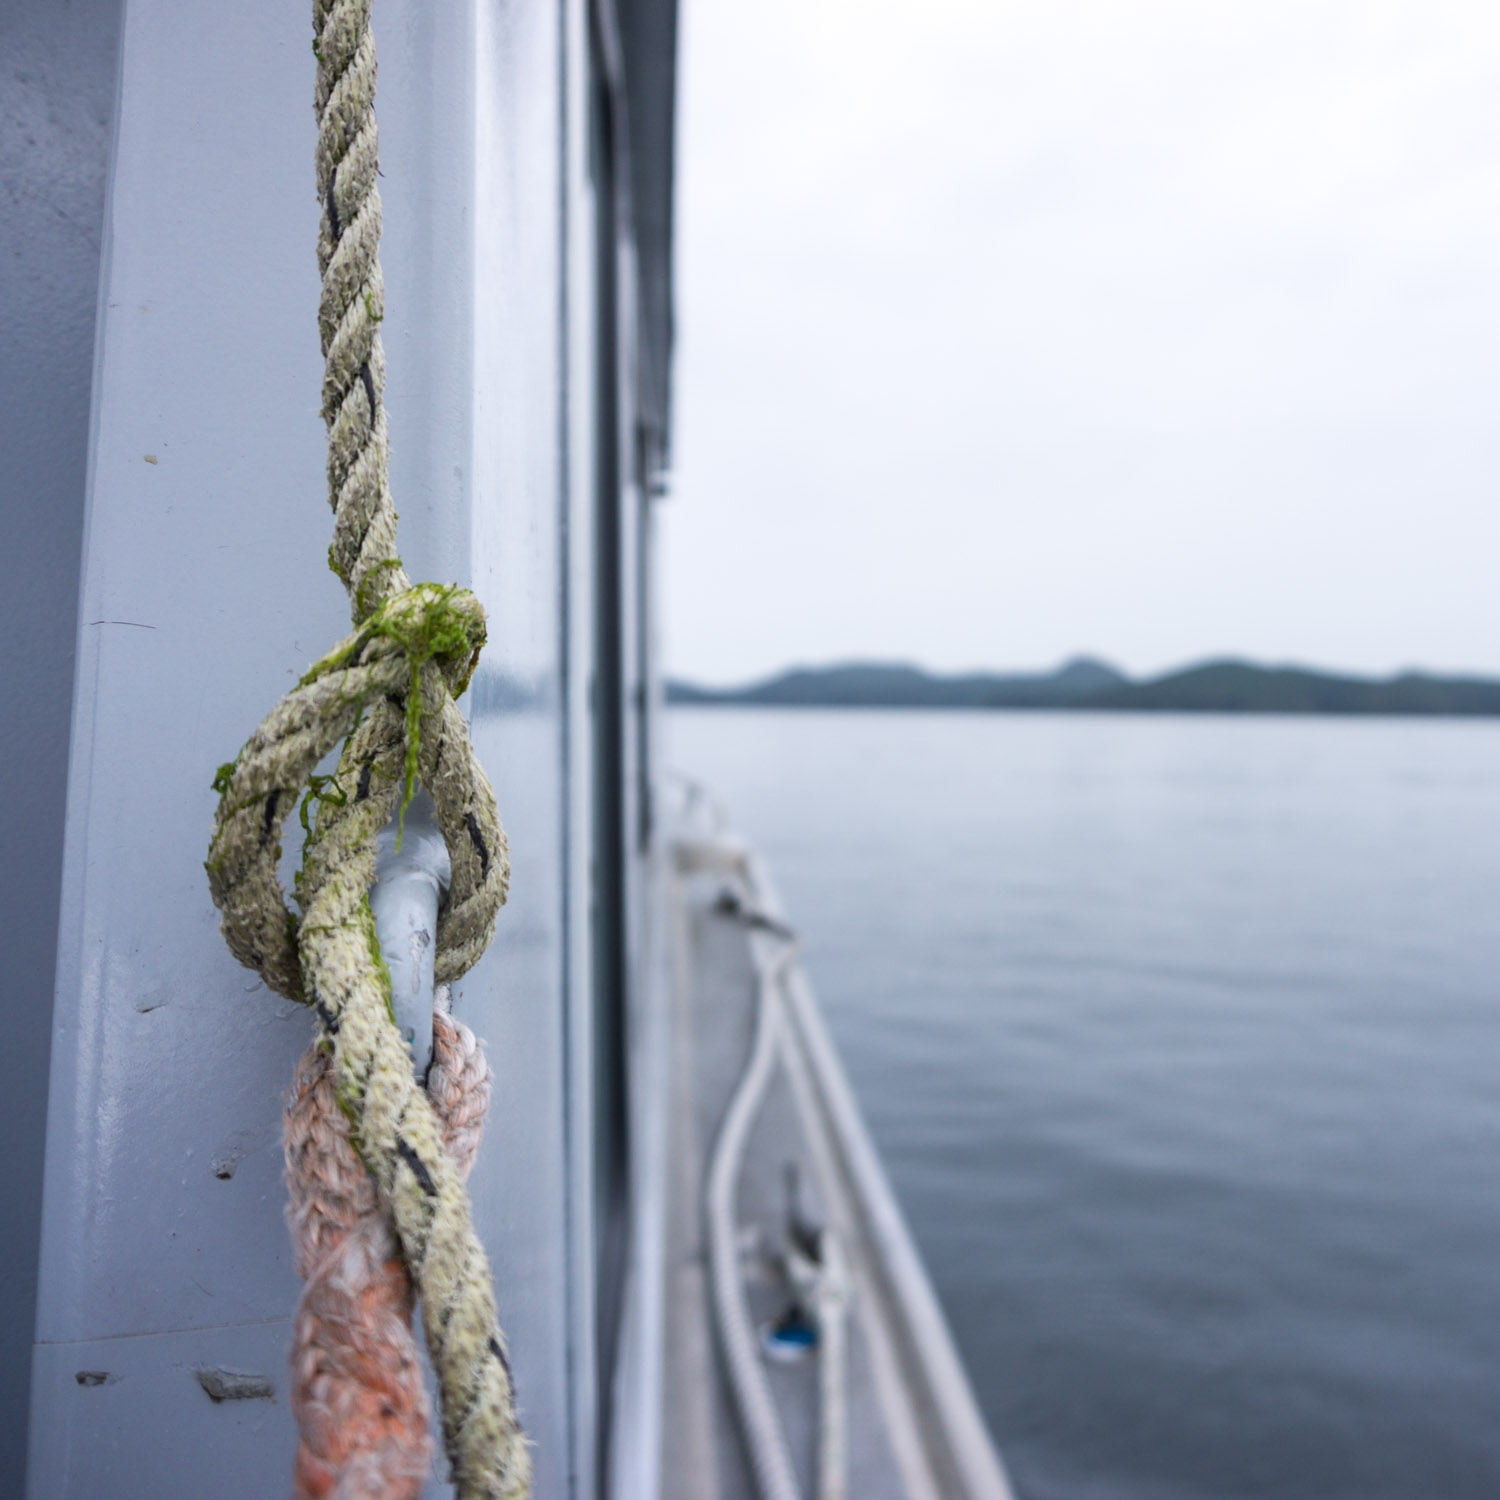 Enroute to Swanson Island